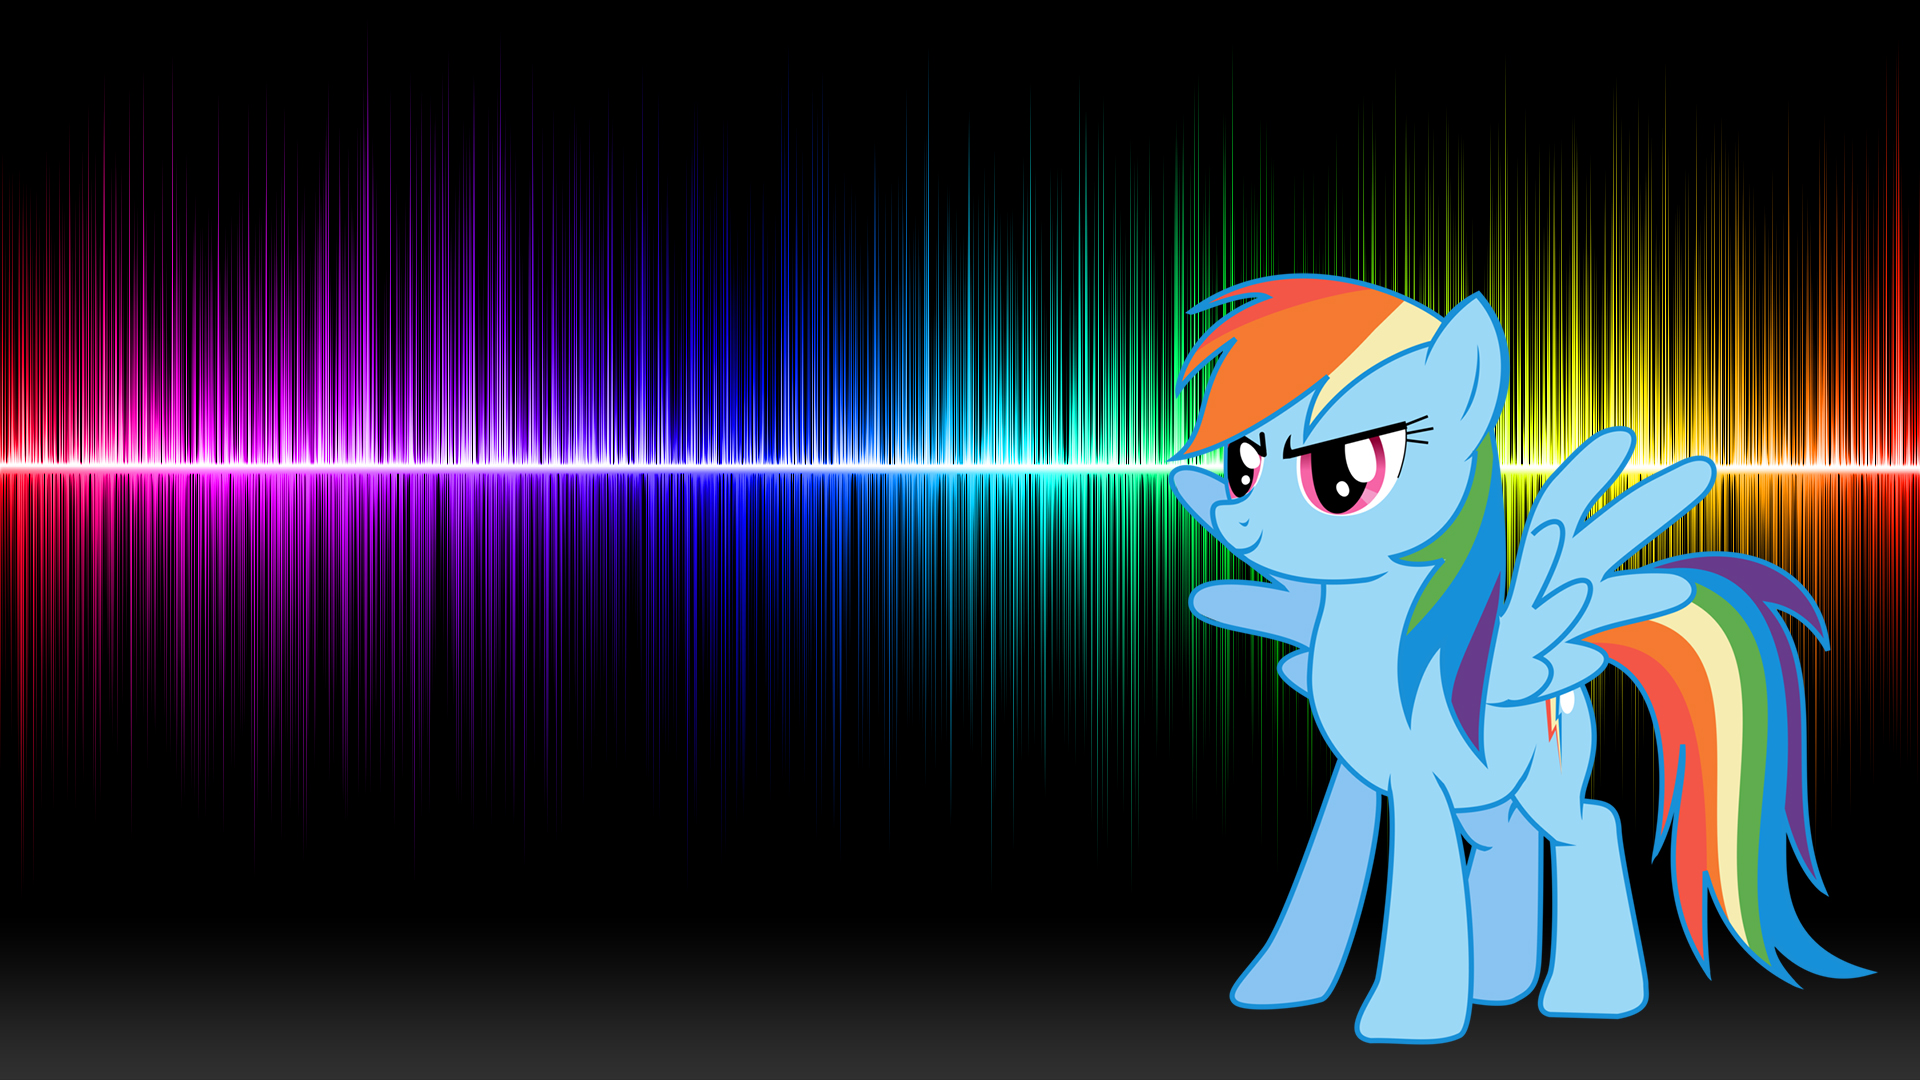 Rainbow Dash 20% cooler! (Wallpaper) by Hardii